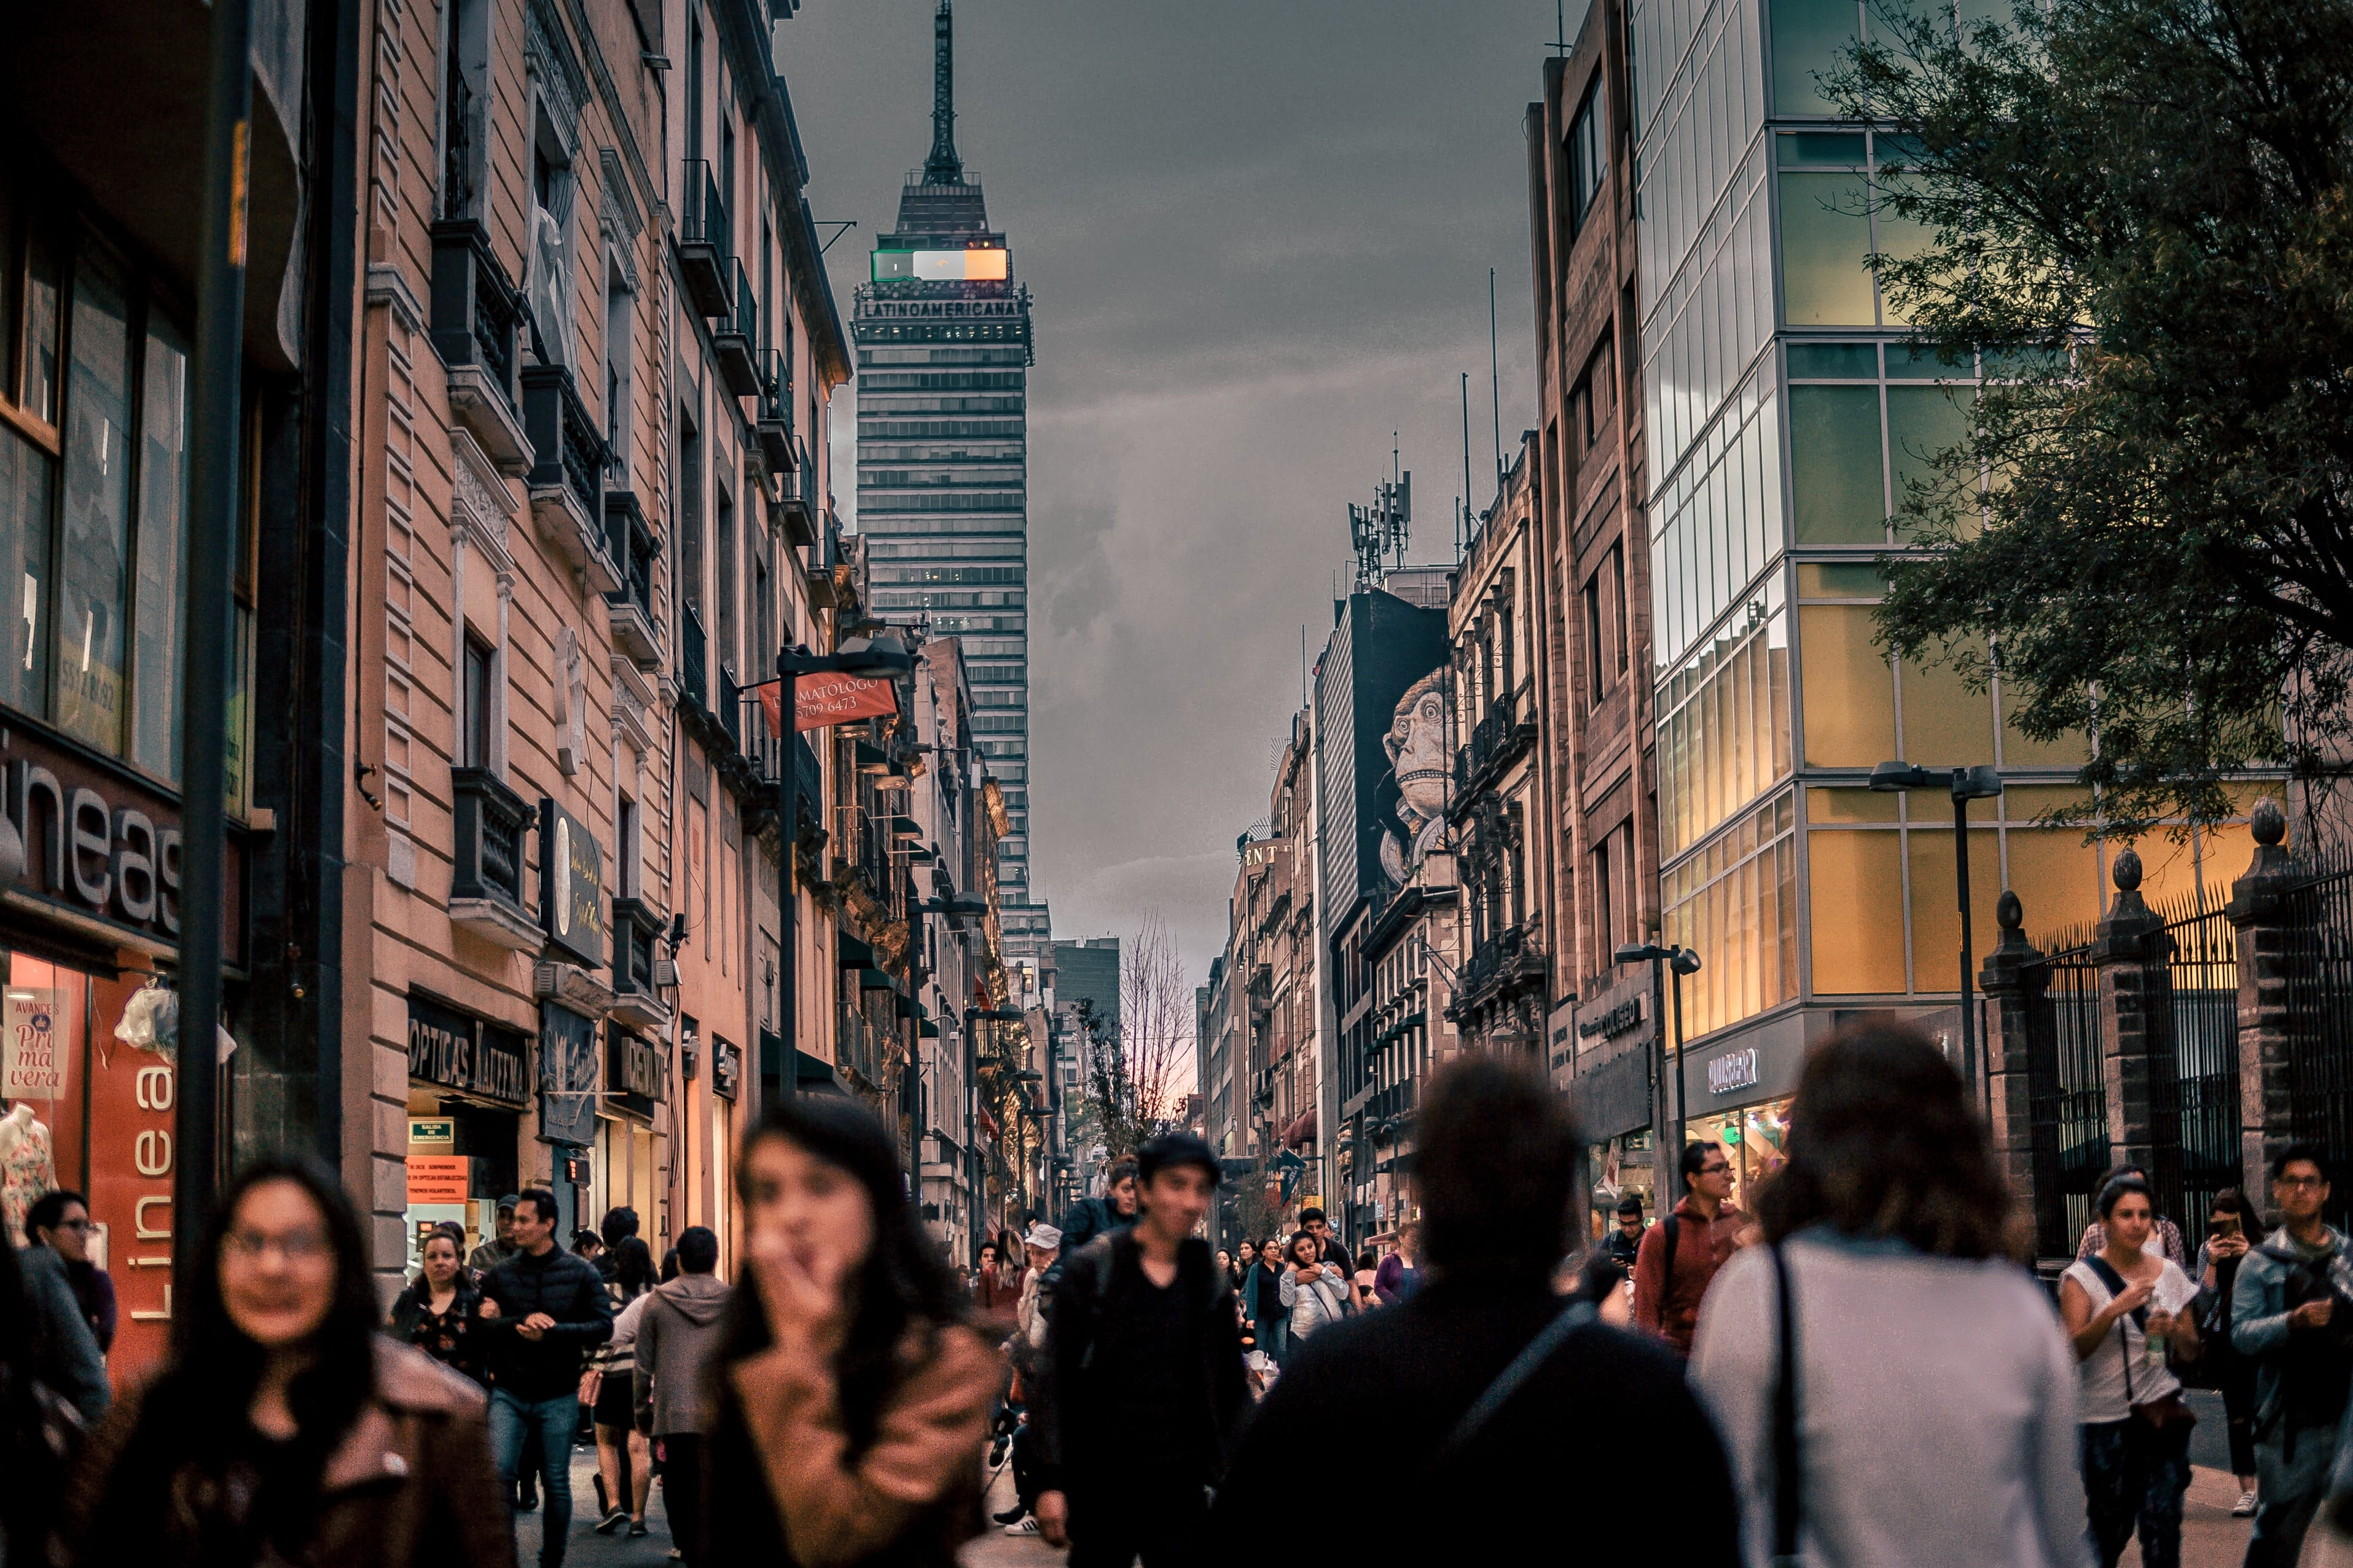 People can walk around safely during Mexico City travel